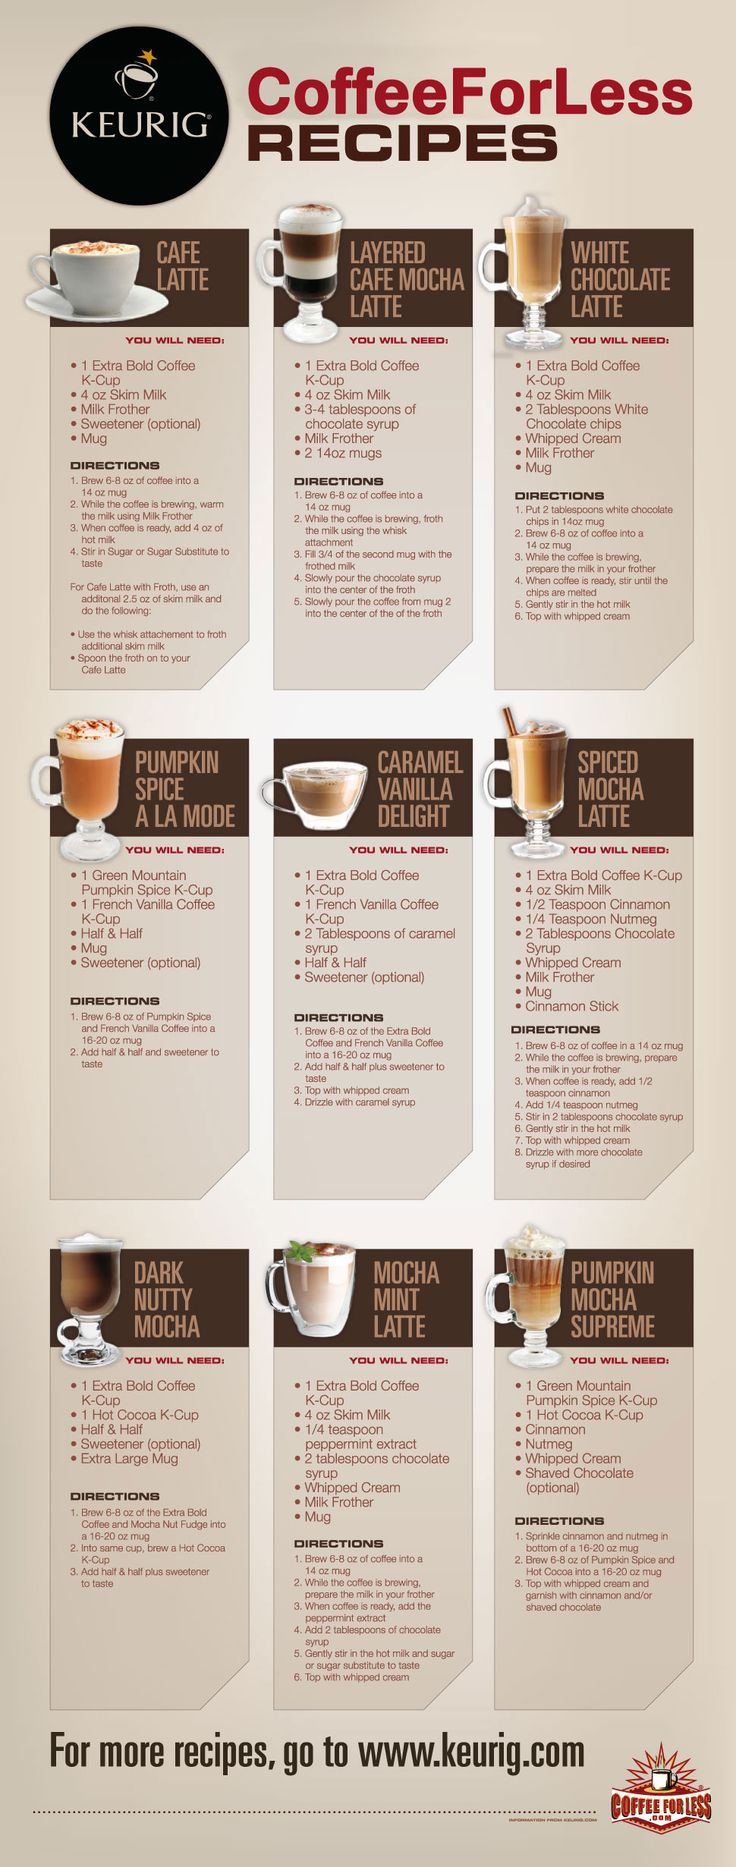 CoffeeForLess.com Learning Center - Coffee Articles - 9 Keurig K-Cup Coffee Recipes